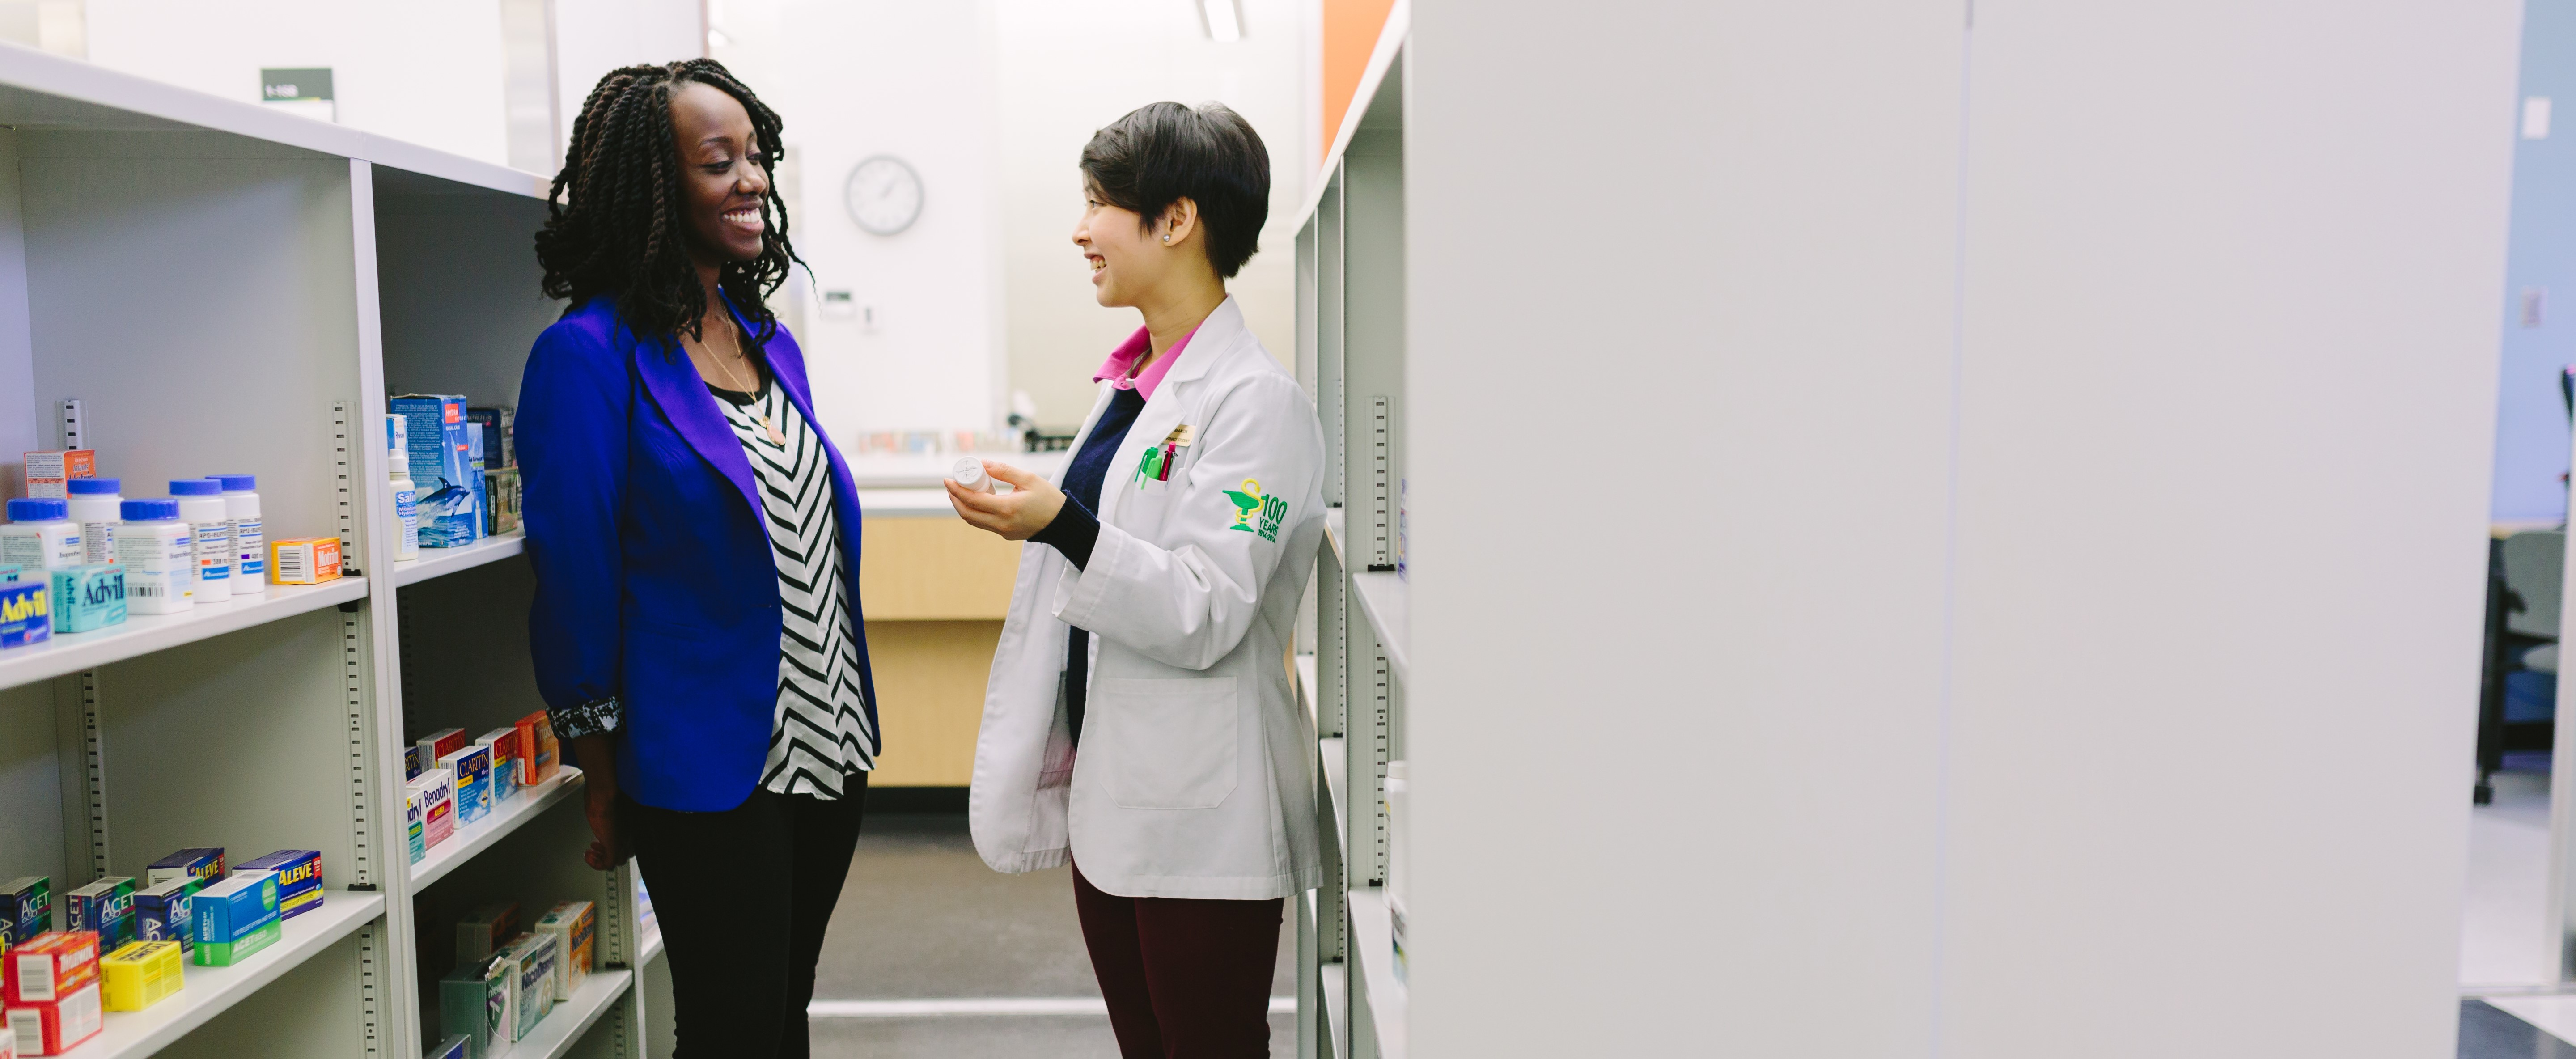 Community pharmacist assisting a female patient in the aisle of a community pharmacy.